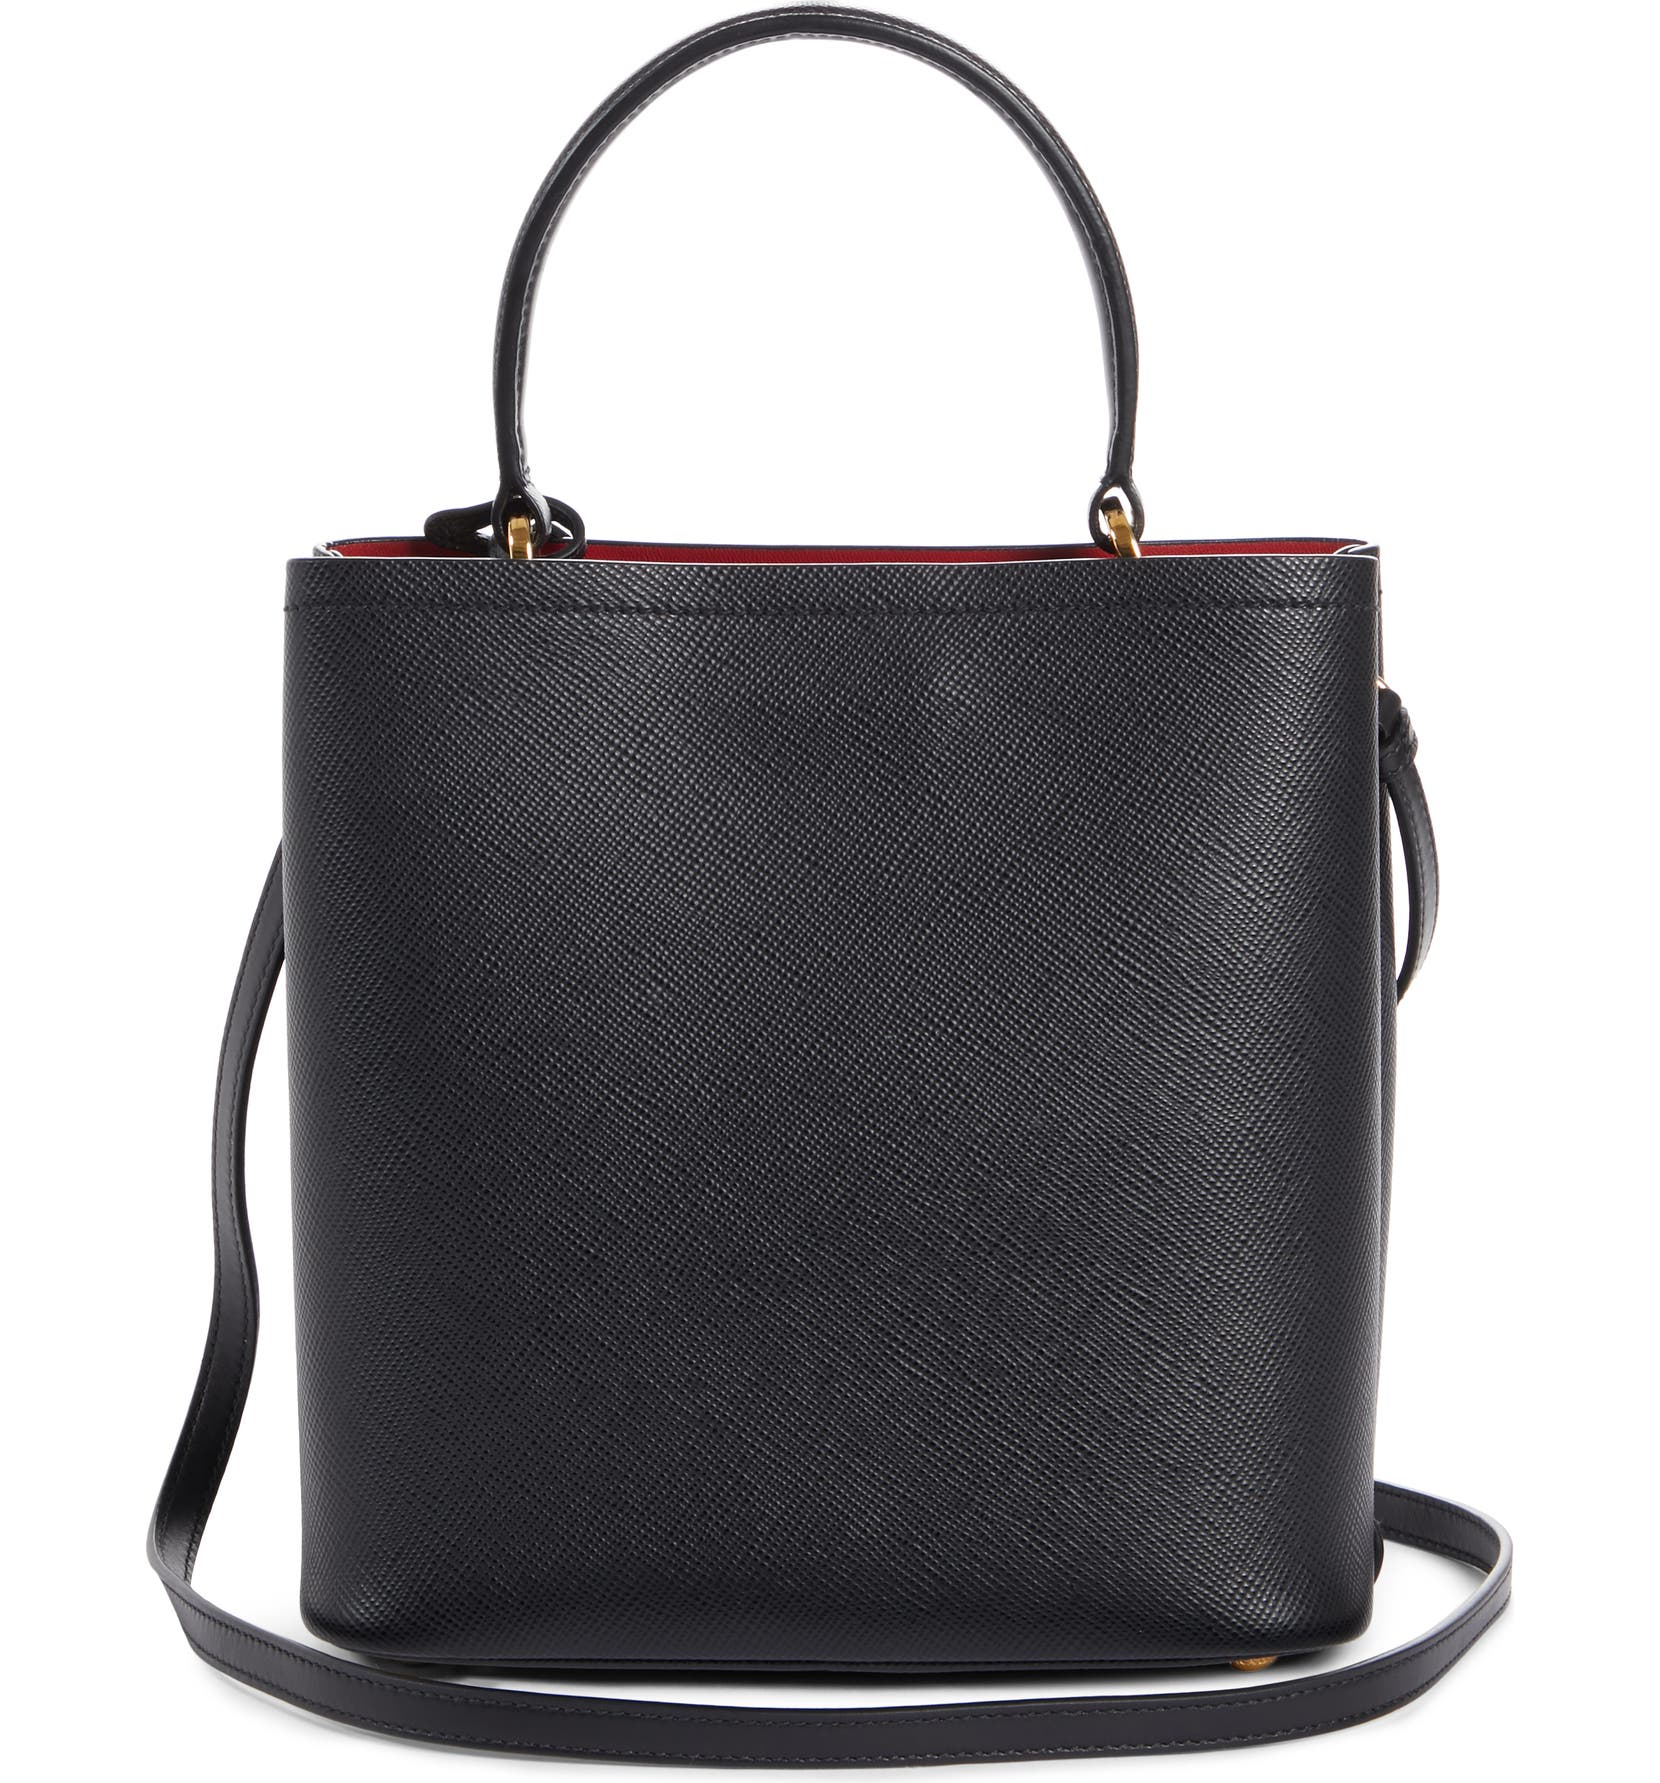 33defc9d75aac7 Prada Double Bucket Bag | Nordstrom